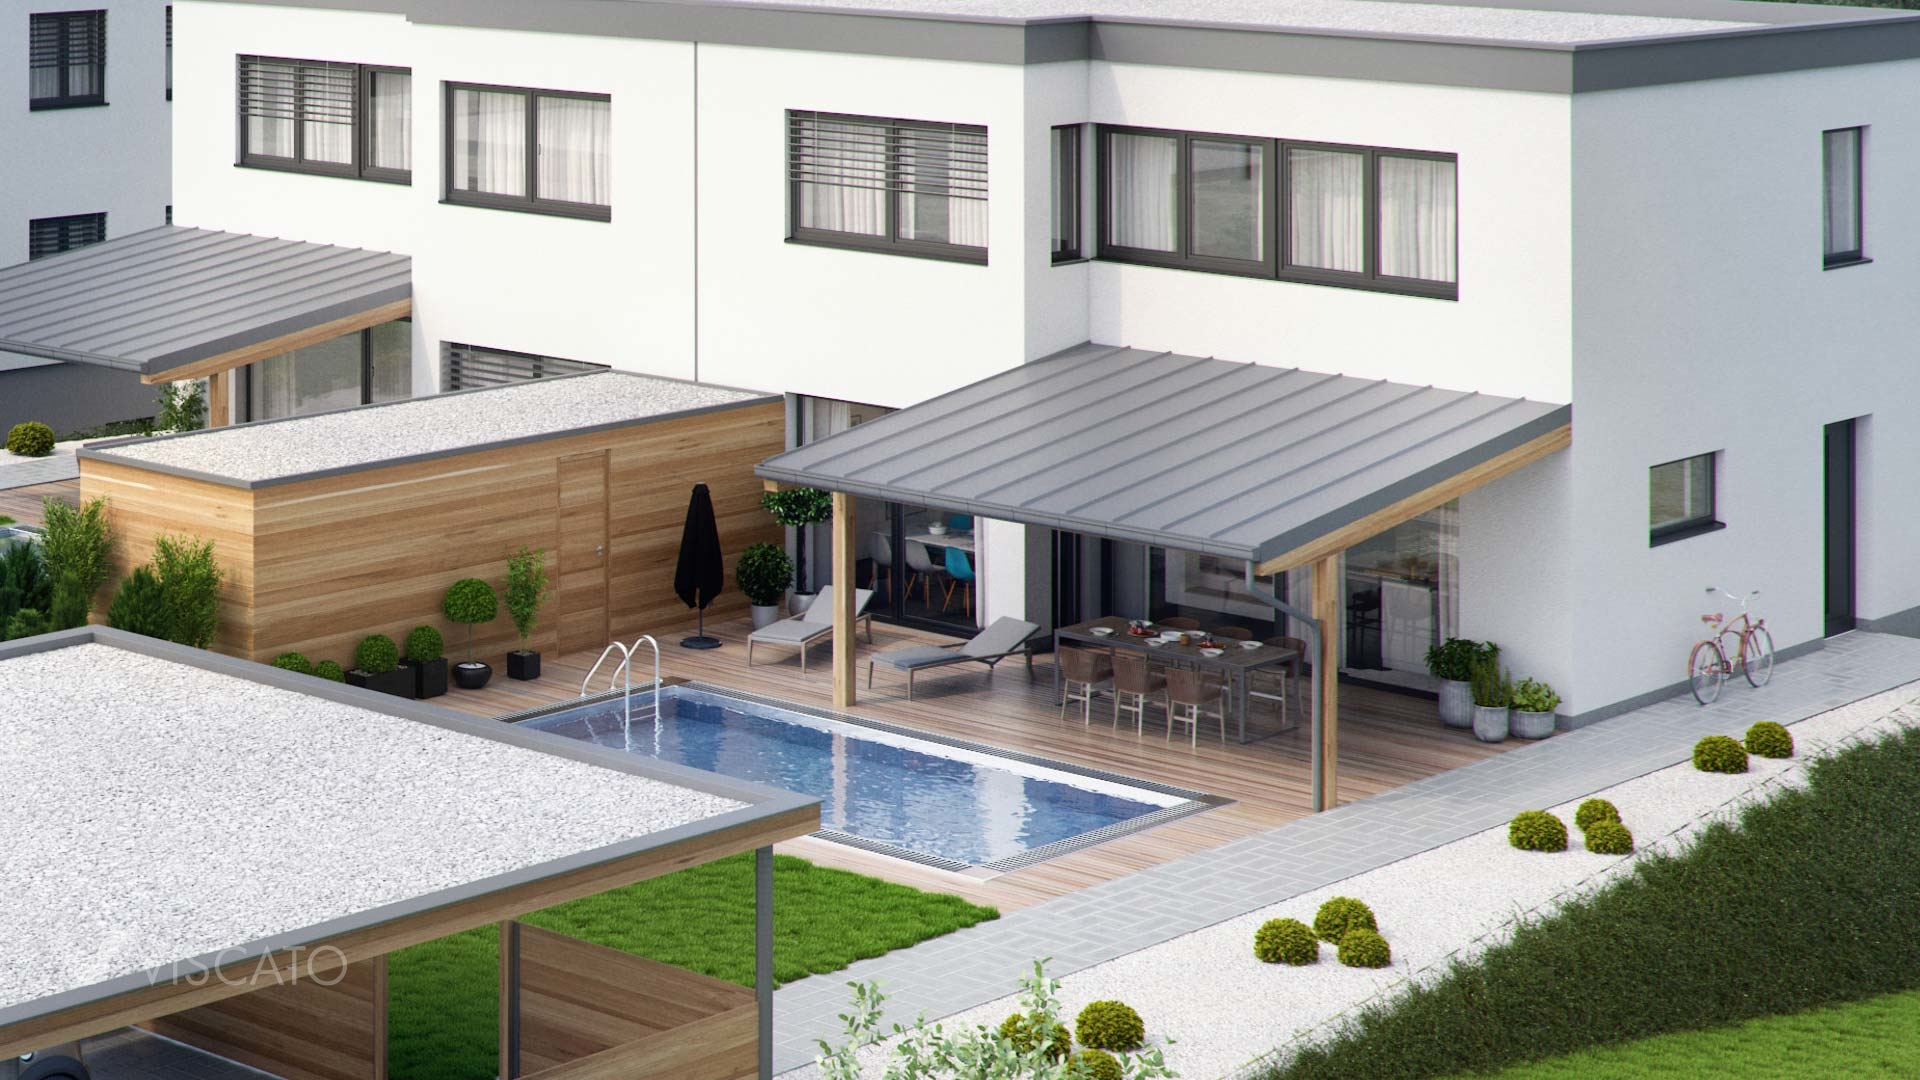 3d exterior visualisation of a house with a pool